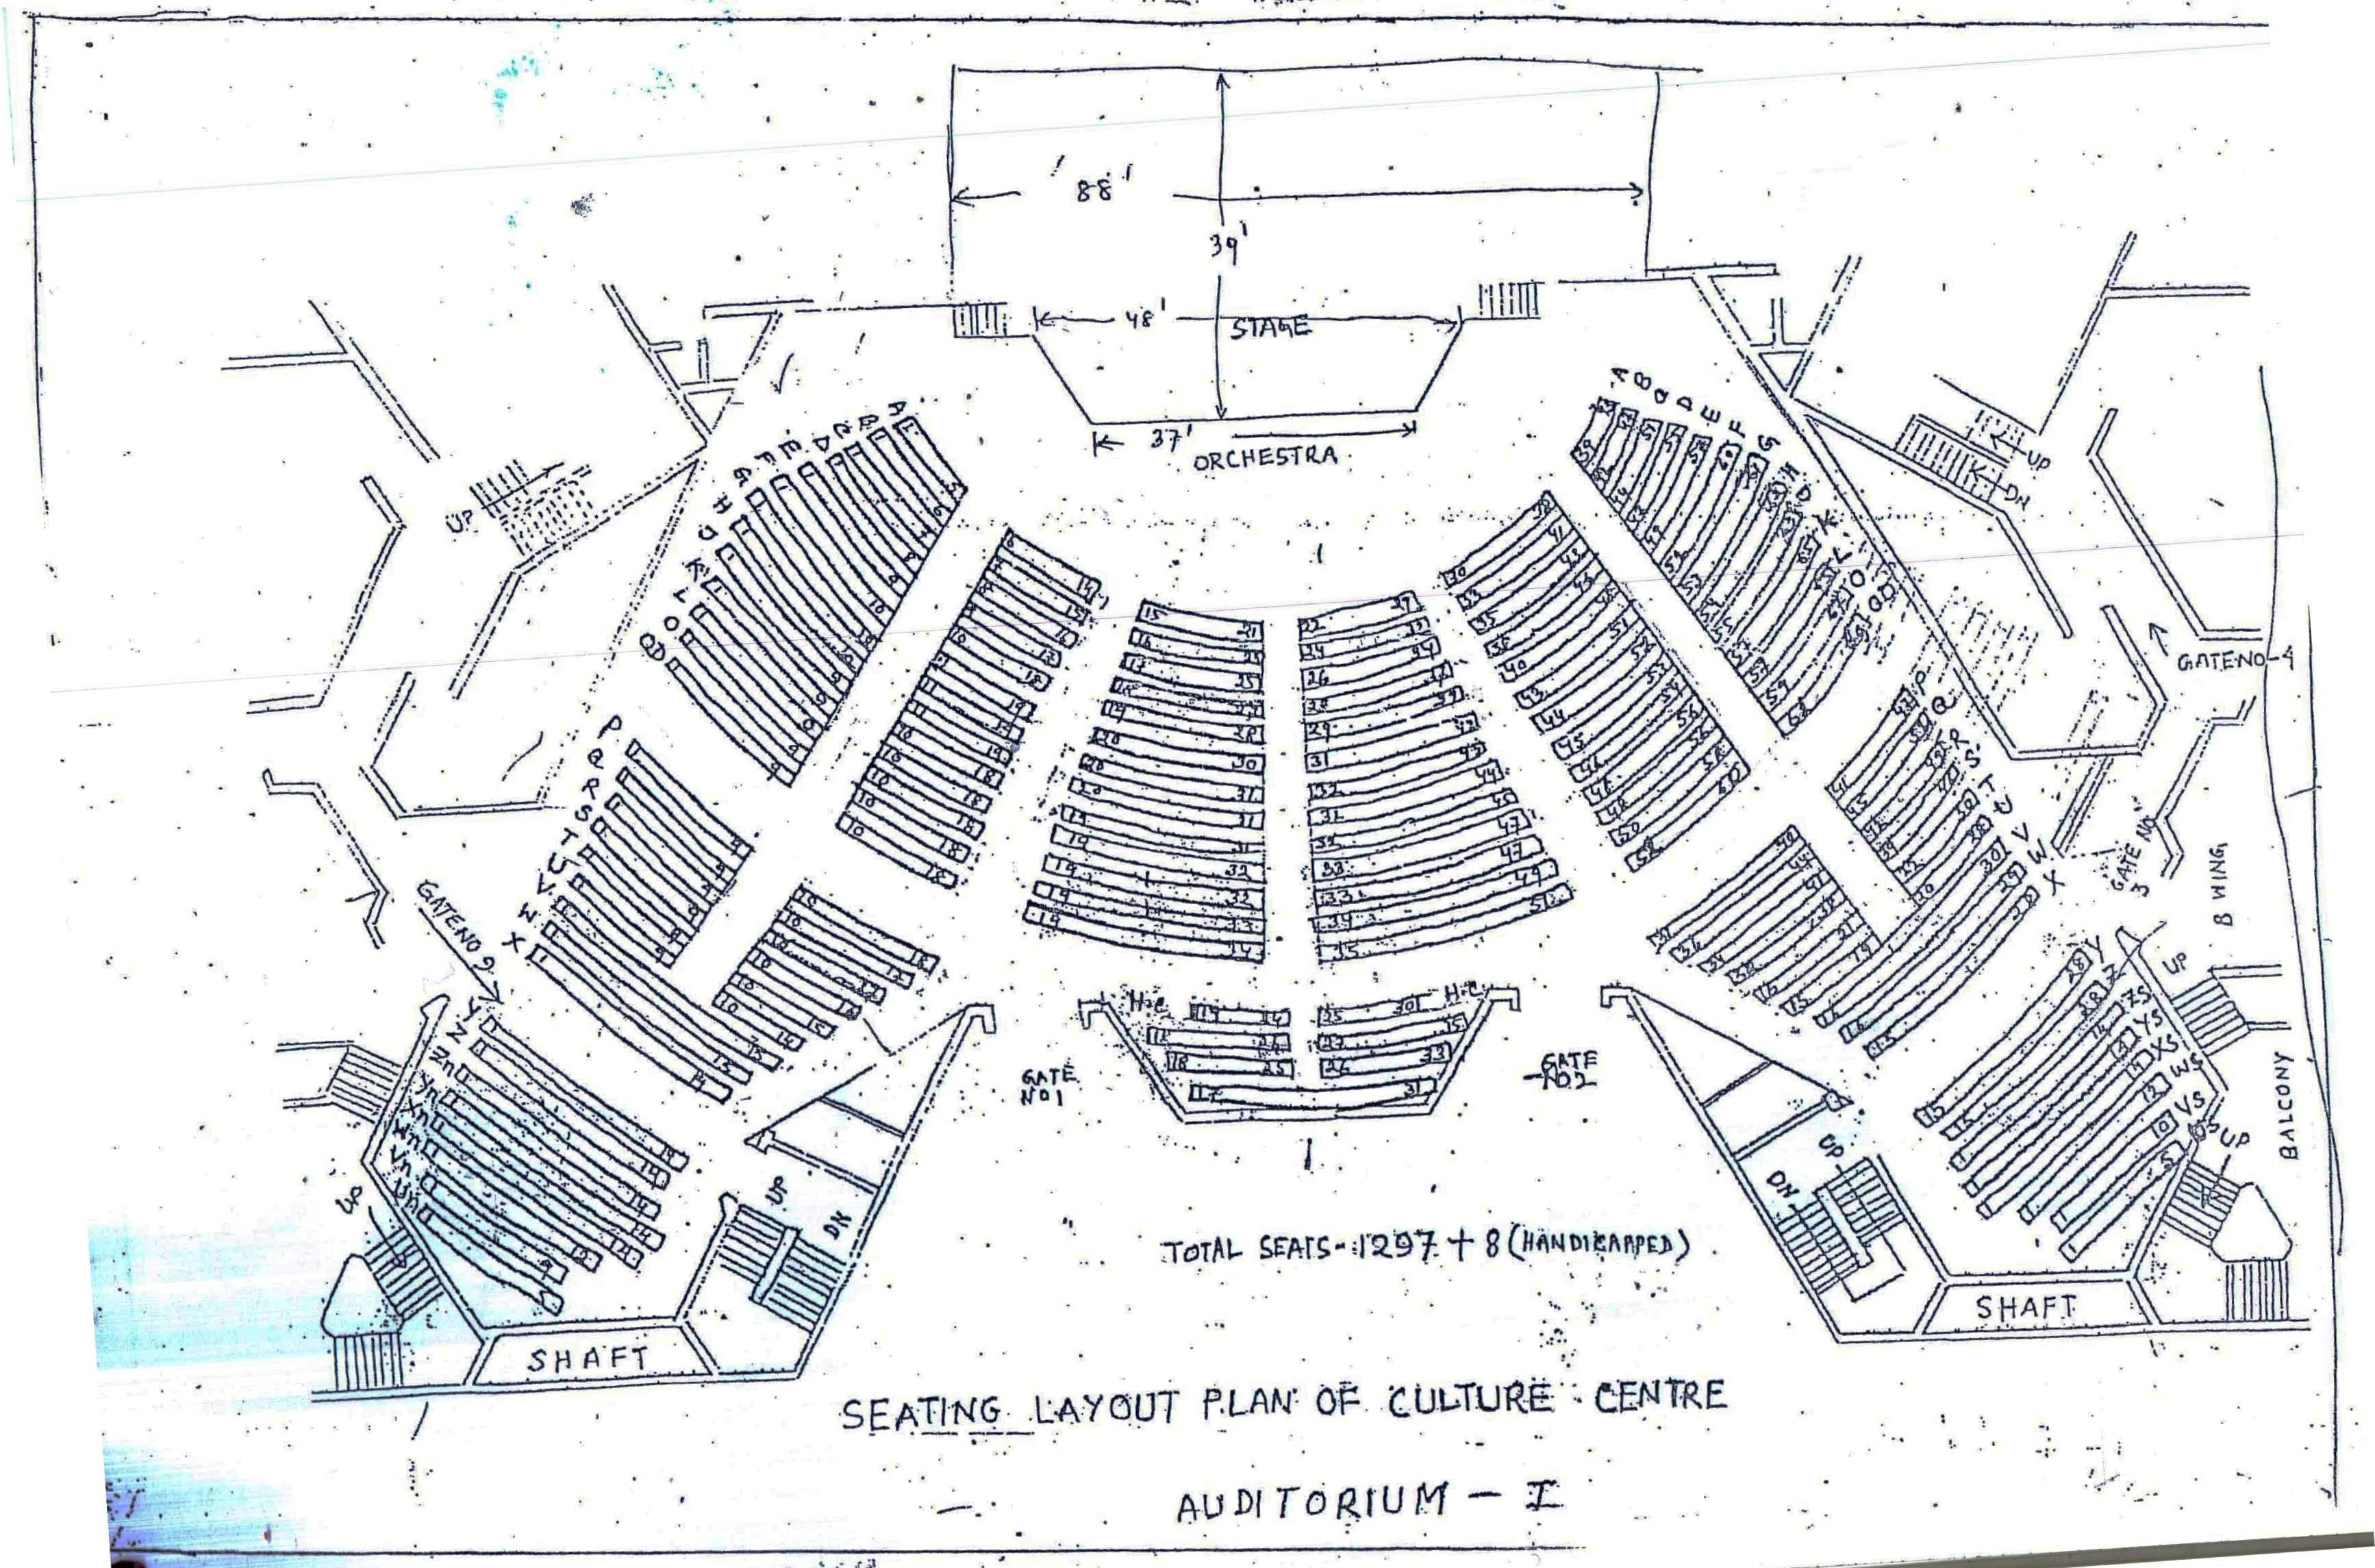 Auditorium - I Seating plan - Ground Floor